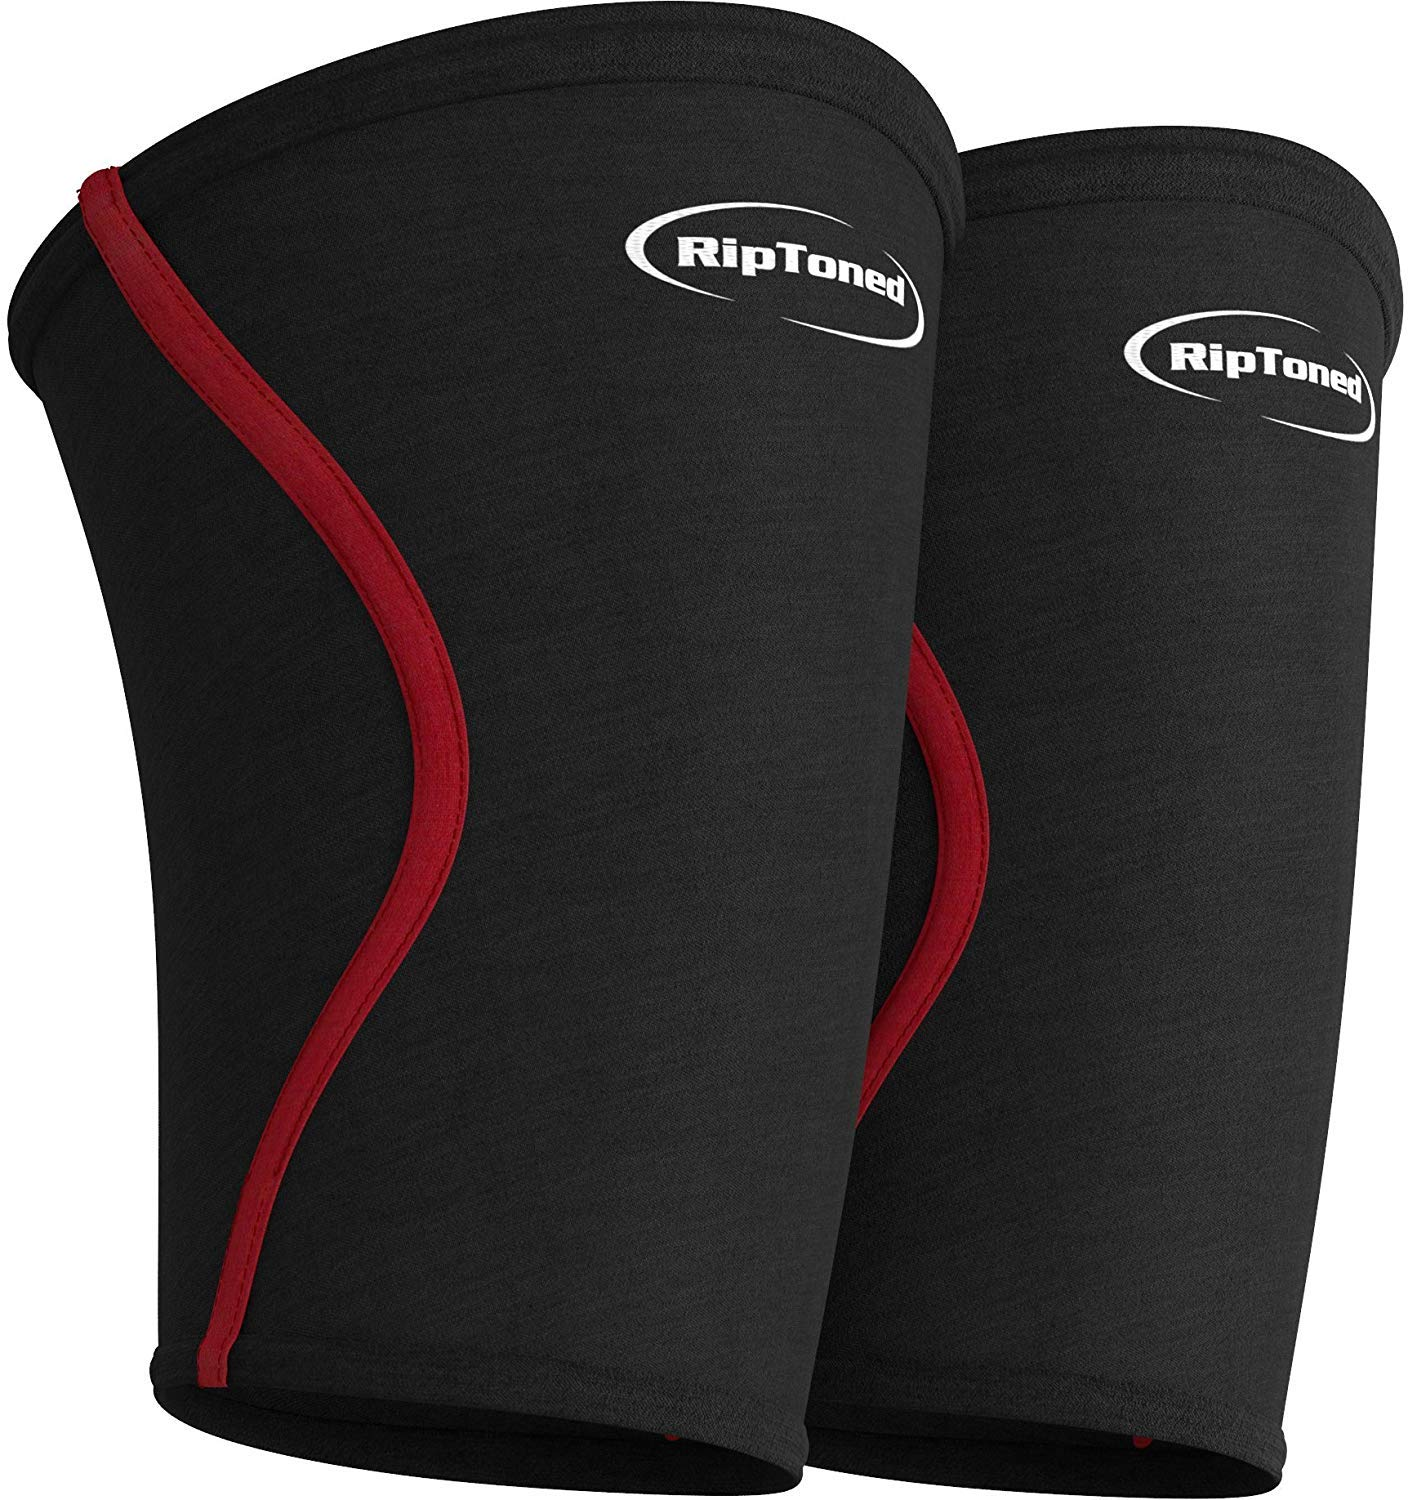 Elbow Sleeves Jacksonville Mall Max 71% OFF Pair - Rip For Compression Brace Toned